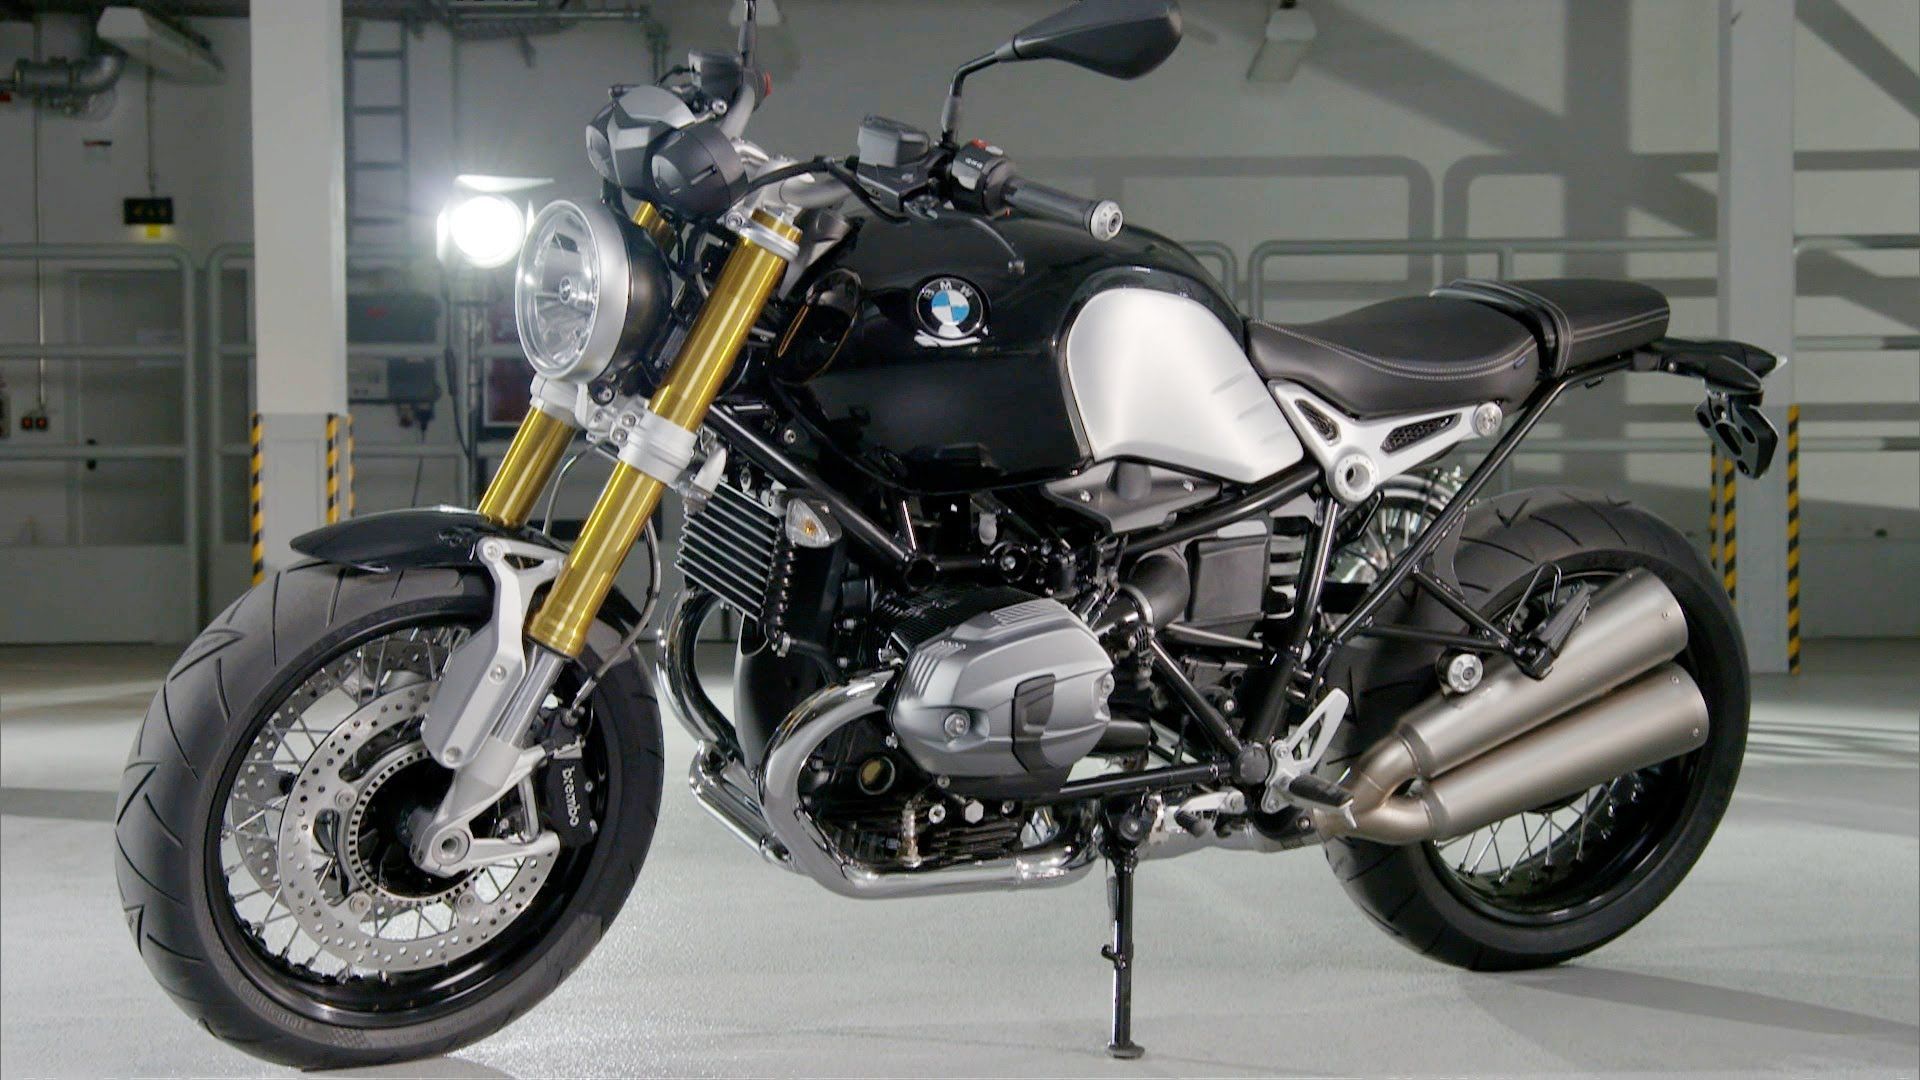 Bmw R Ninet Wallpapers Vehicles Hq Bmw R Ninet Pictures 4k Wallpapers 2019